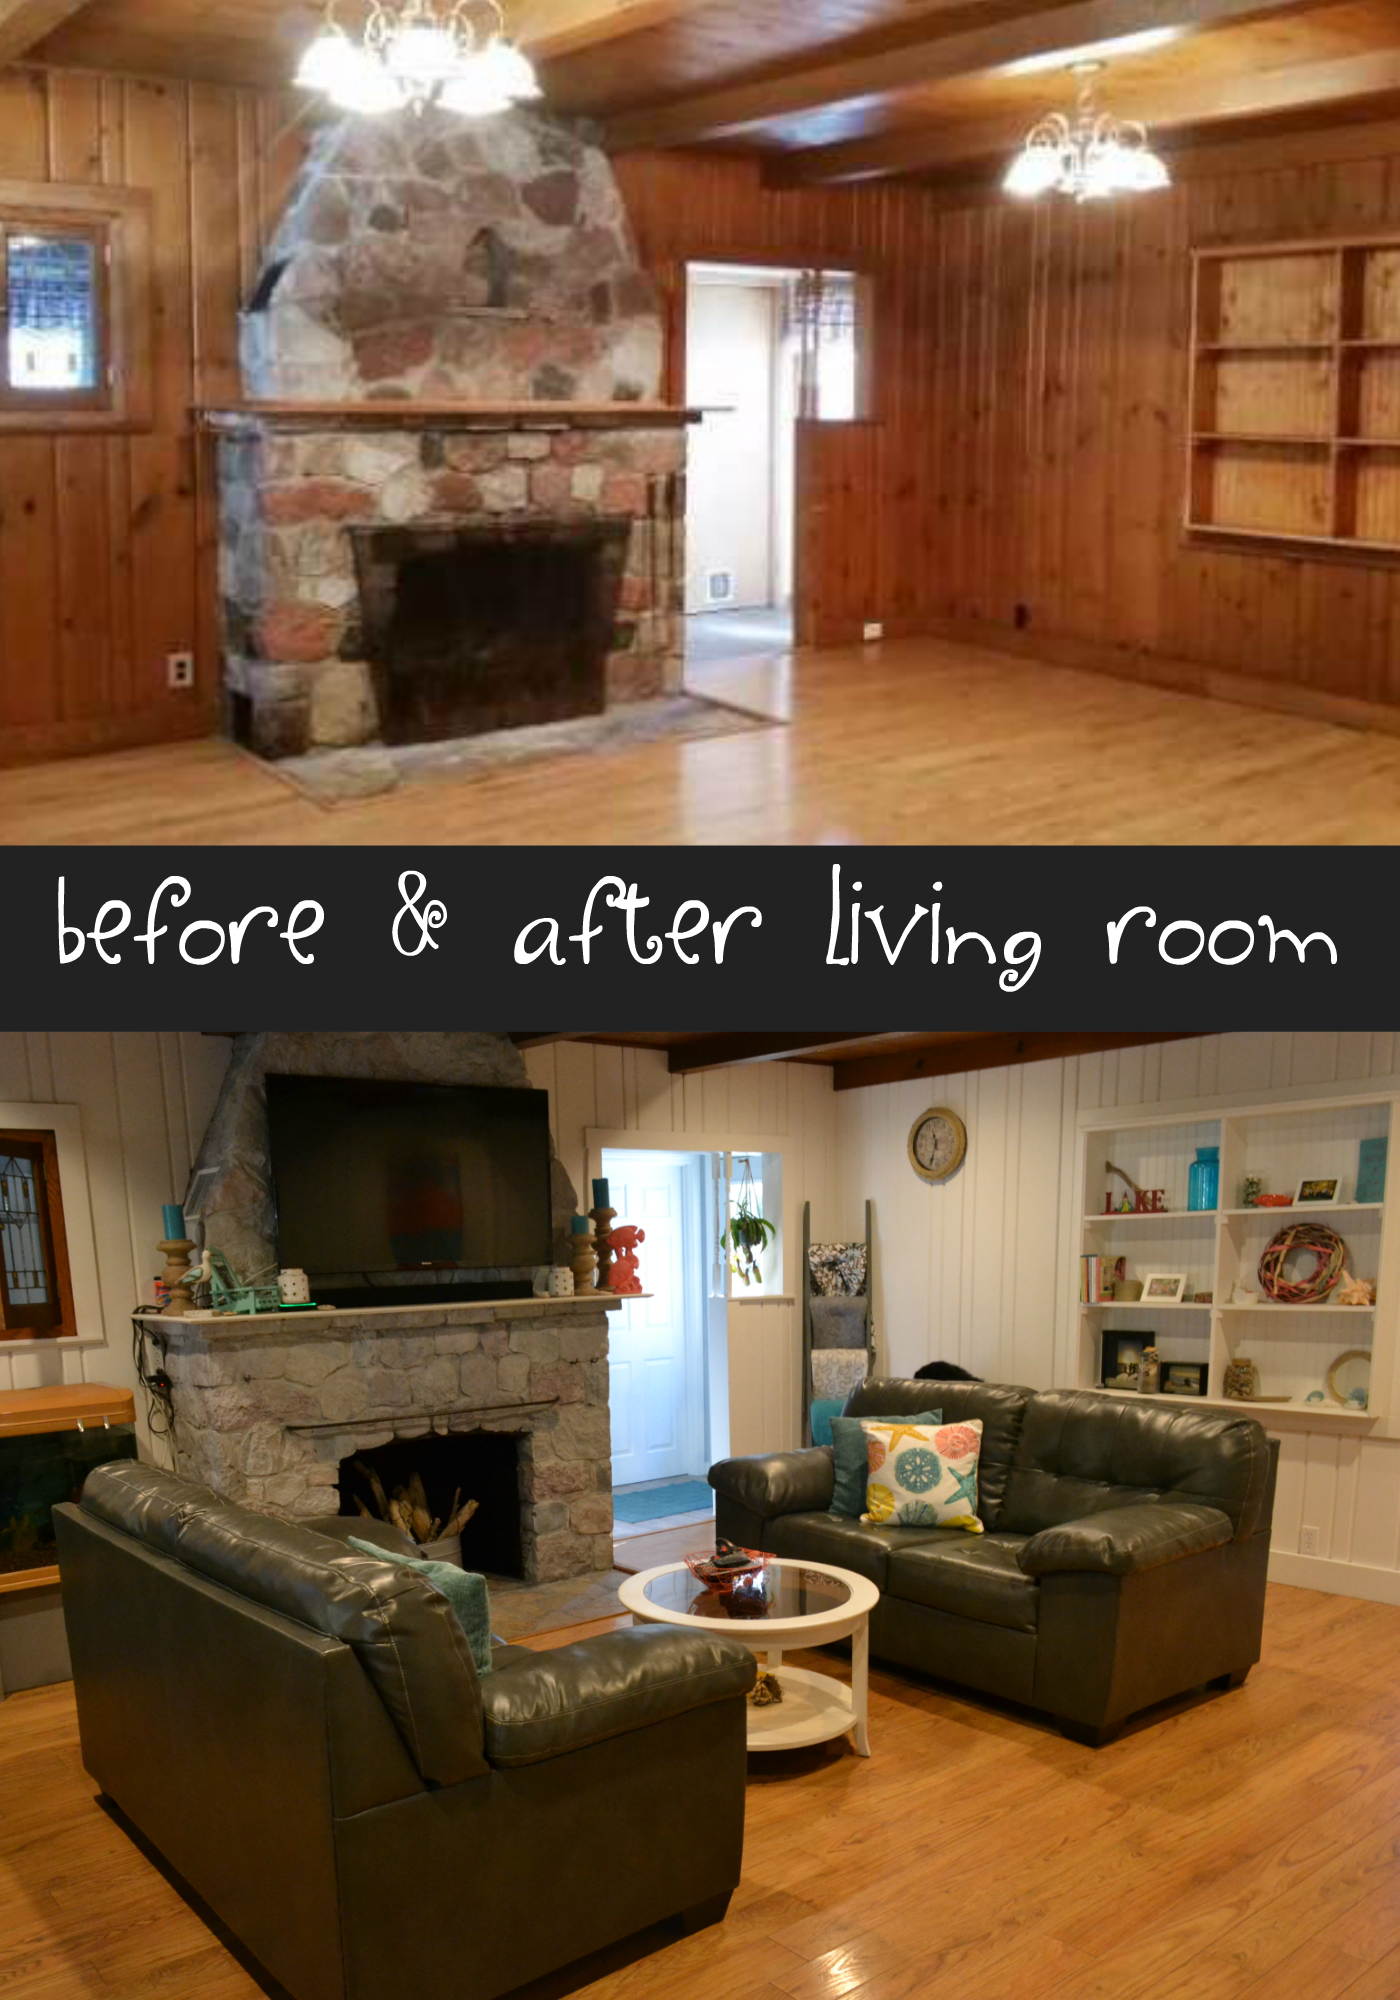 How Much Does It Cost To Ship A Car >> Before and after living room remodel. Coastal living room ...